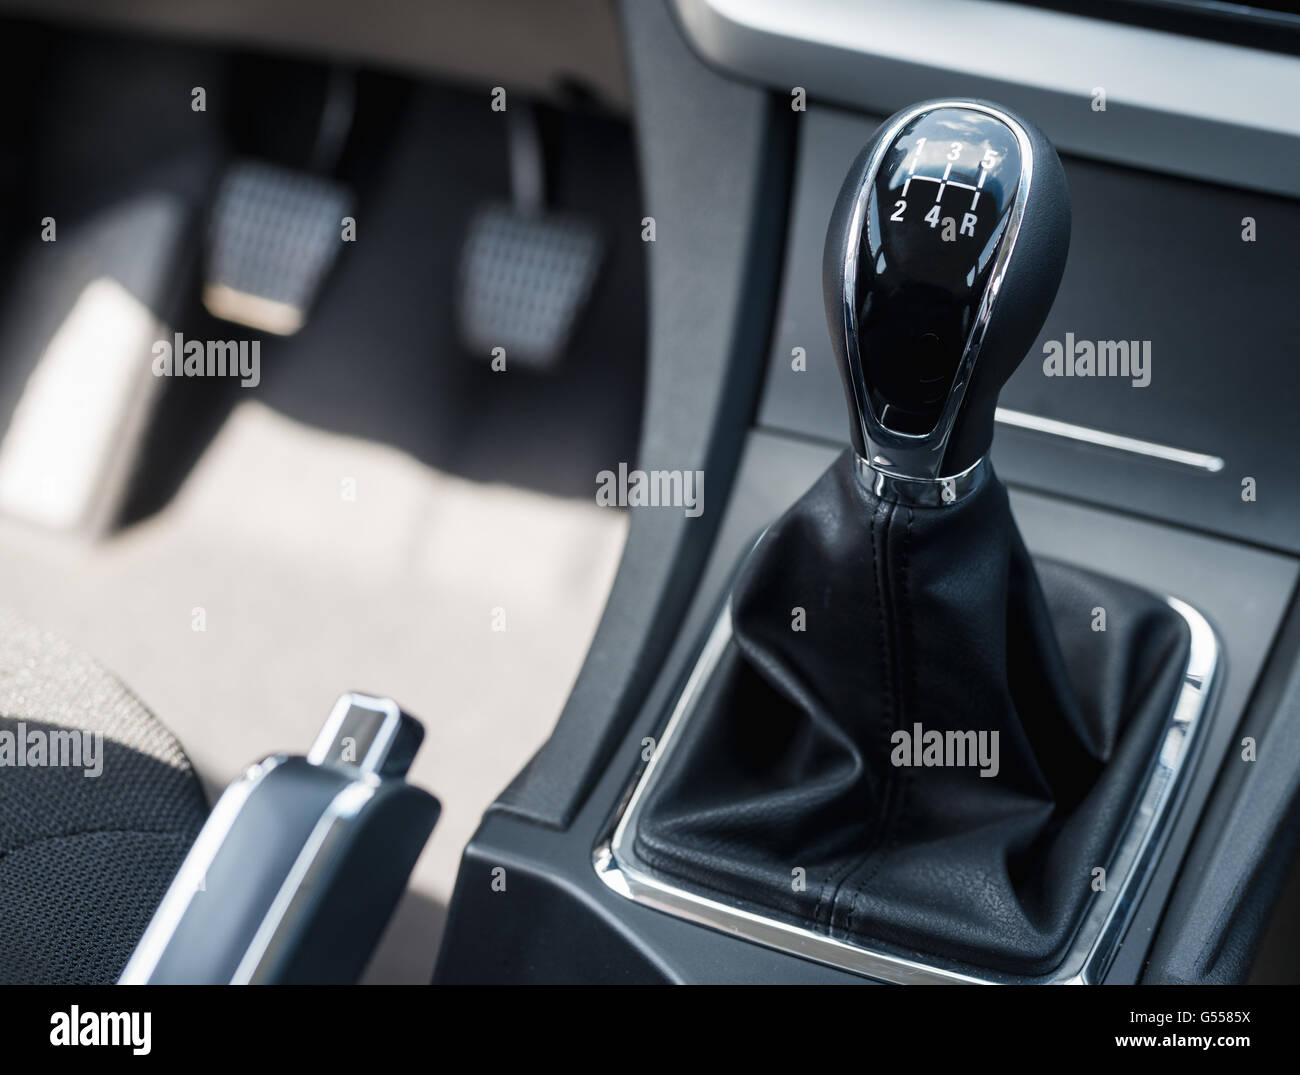 car shift lever - Stock Image